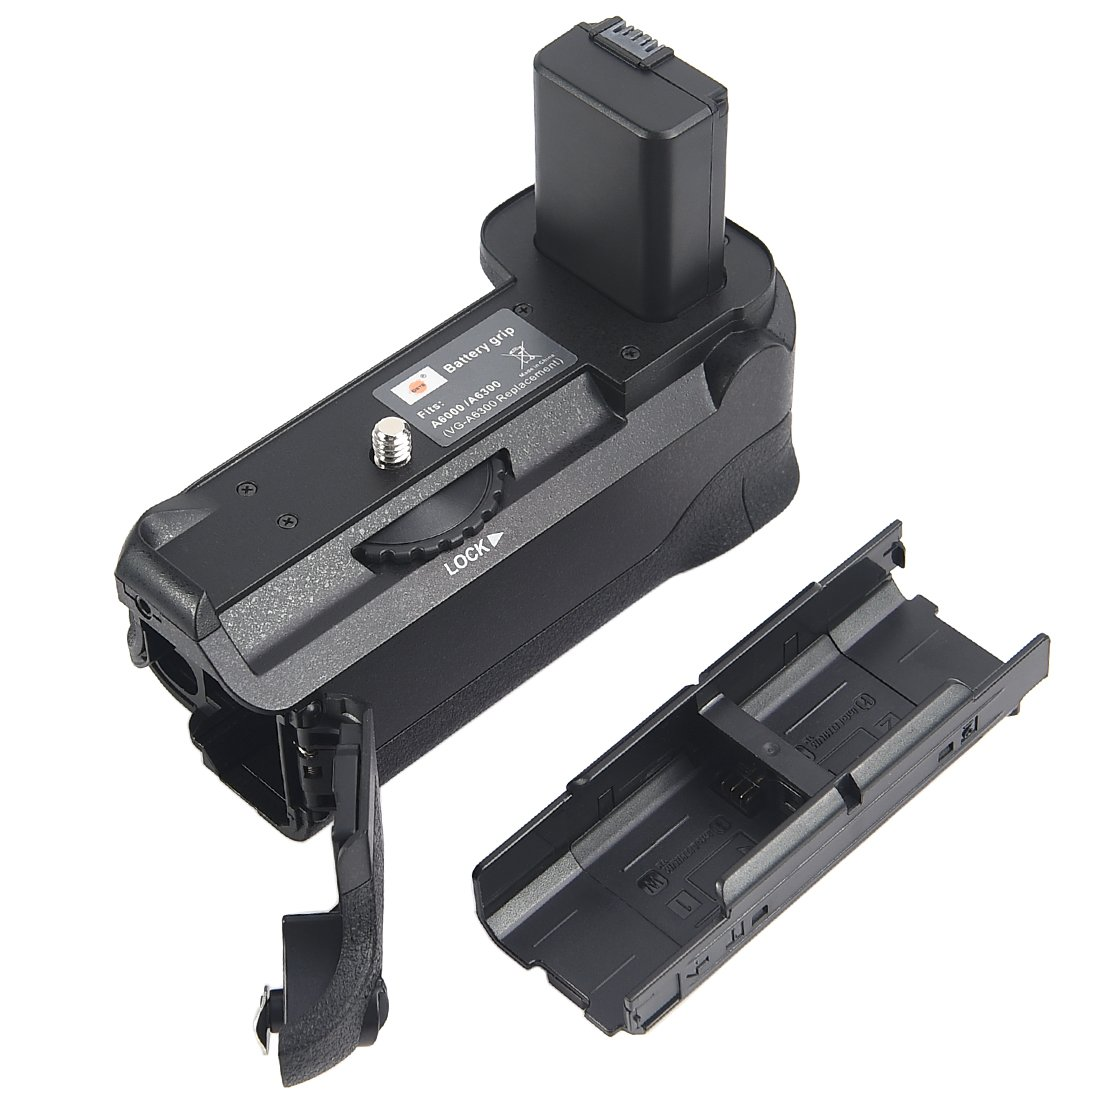 DSTE Pro VG-6300 Vertical Battery Grip For SONY A6300 A6000 Digital Camera